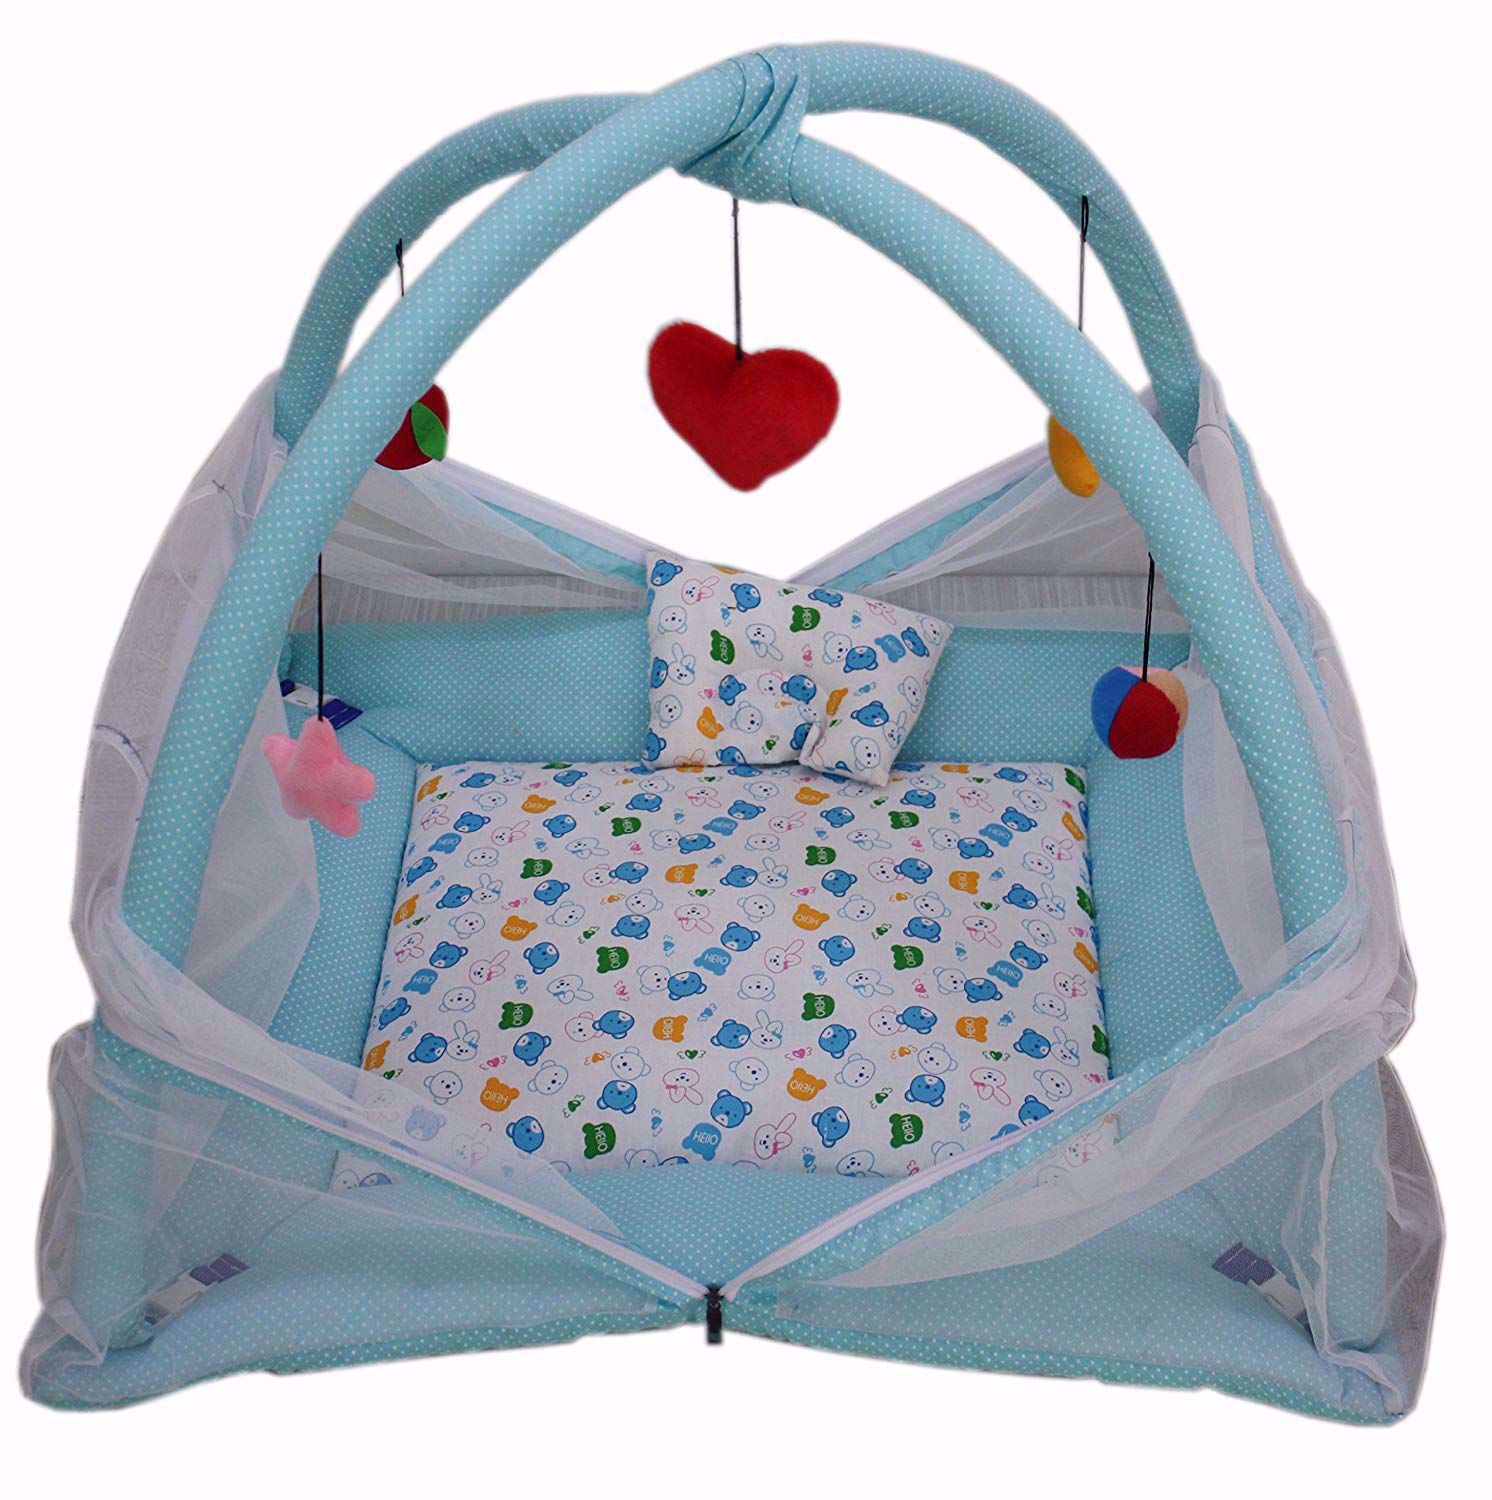 Baby Play Gym Blue